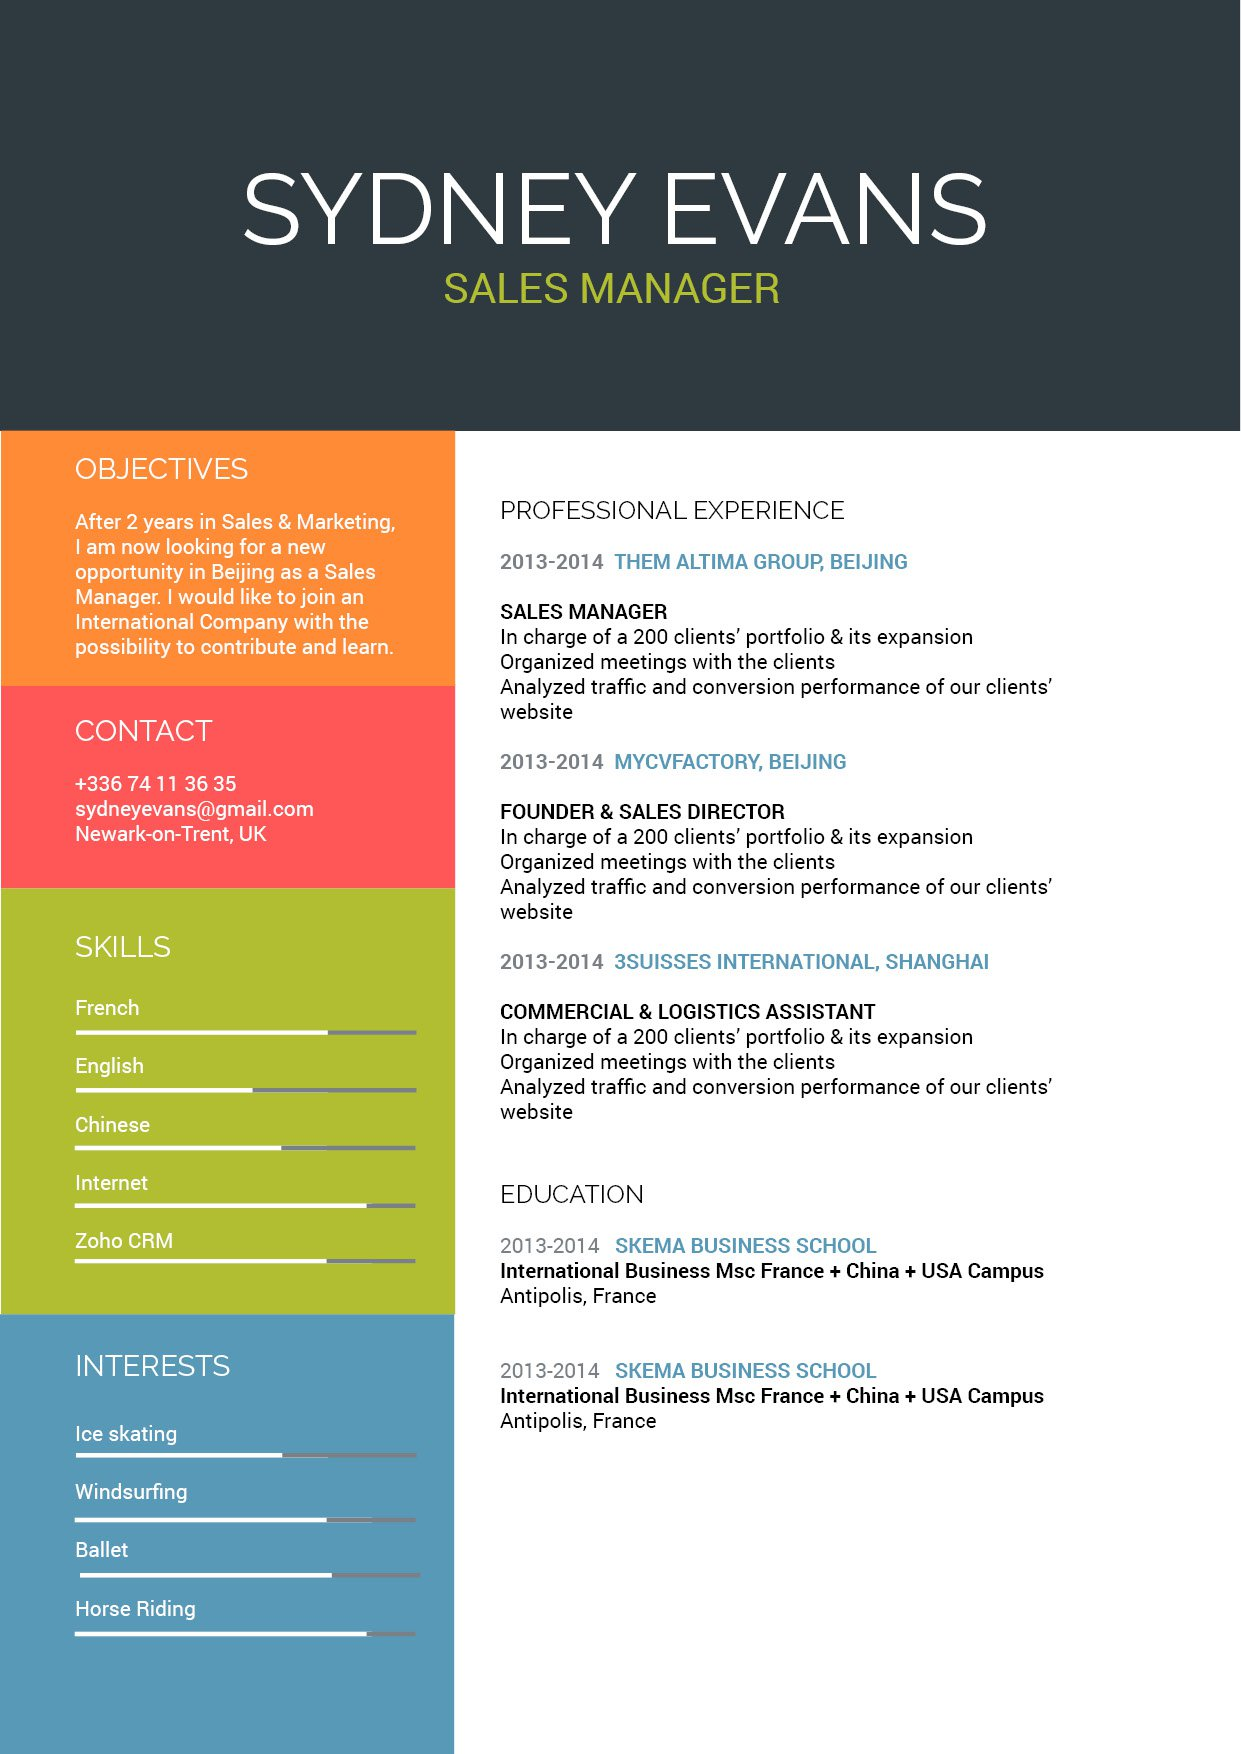 A great resume template to land you that dream job thanks to its designs and formatting.